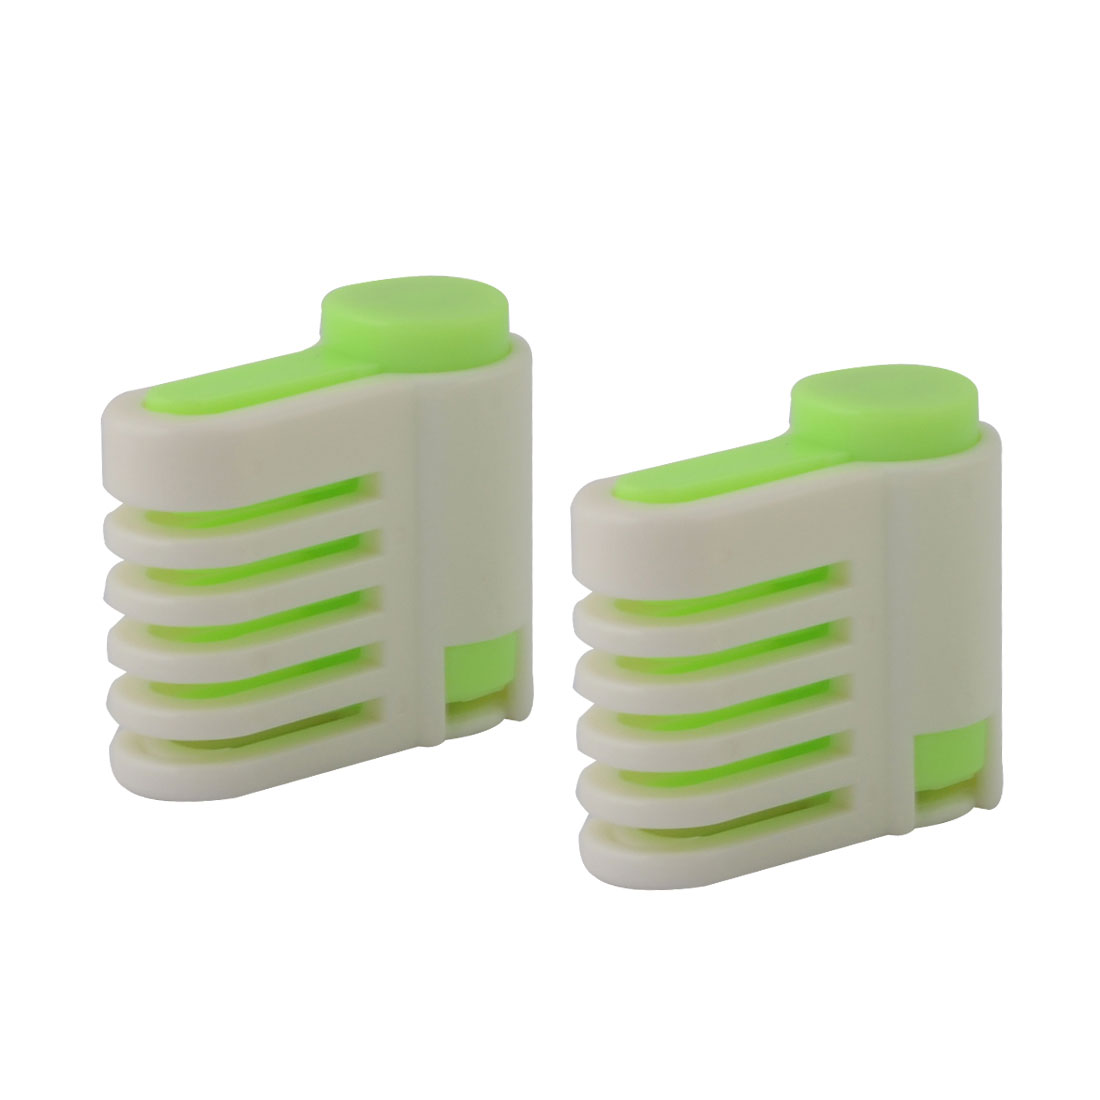 Adjustable 5 Layers Cake Leveler Slicer Bread Cutter Cut Guide Tool 2pcs